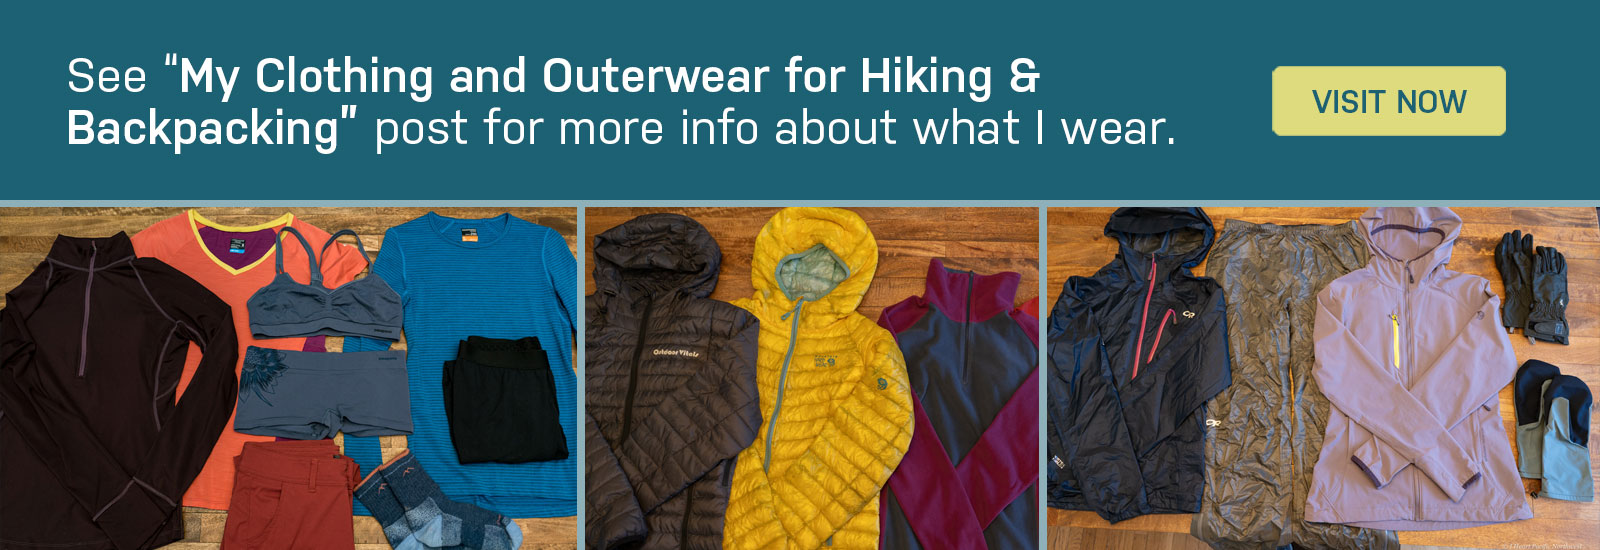 my clothing and outerwear for hiking and backpacking